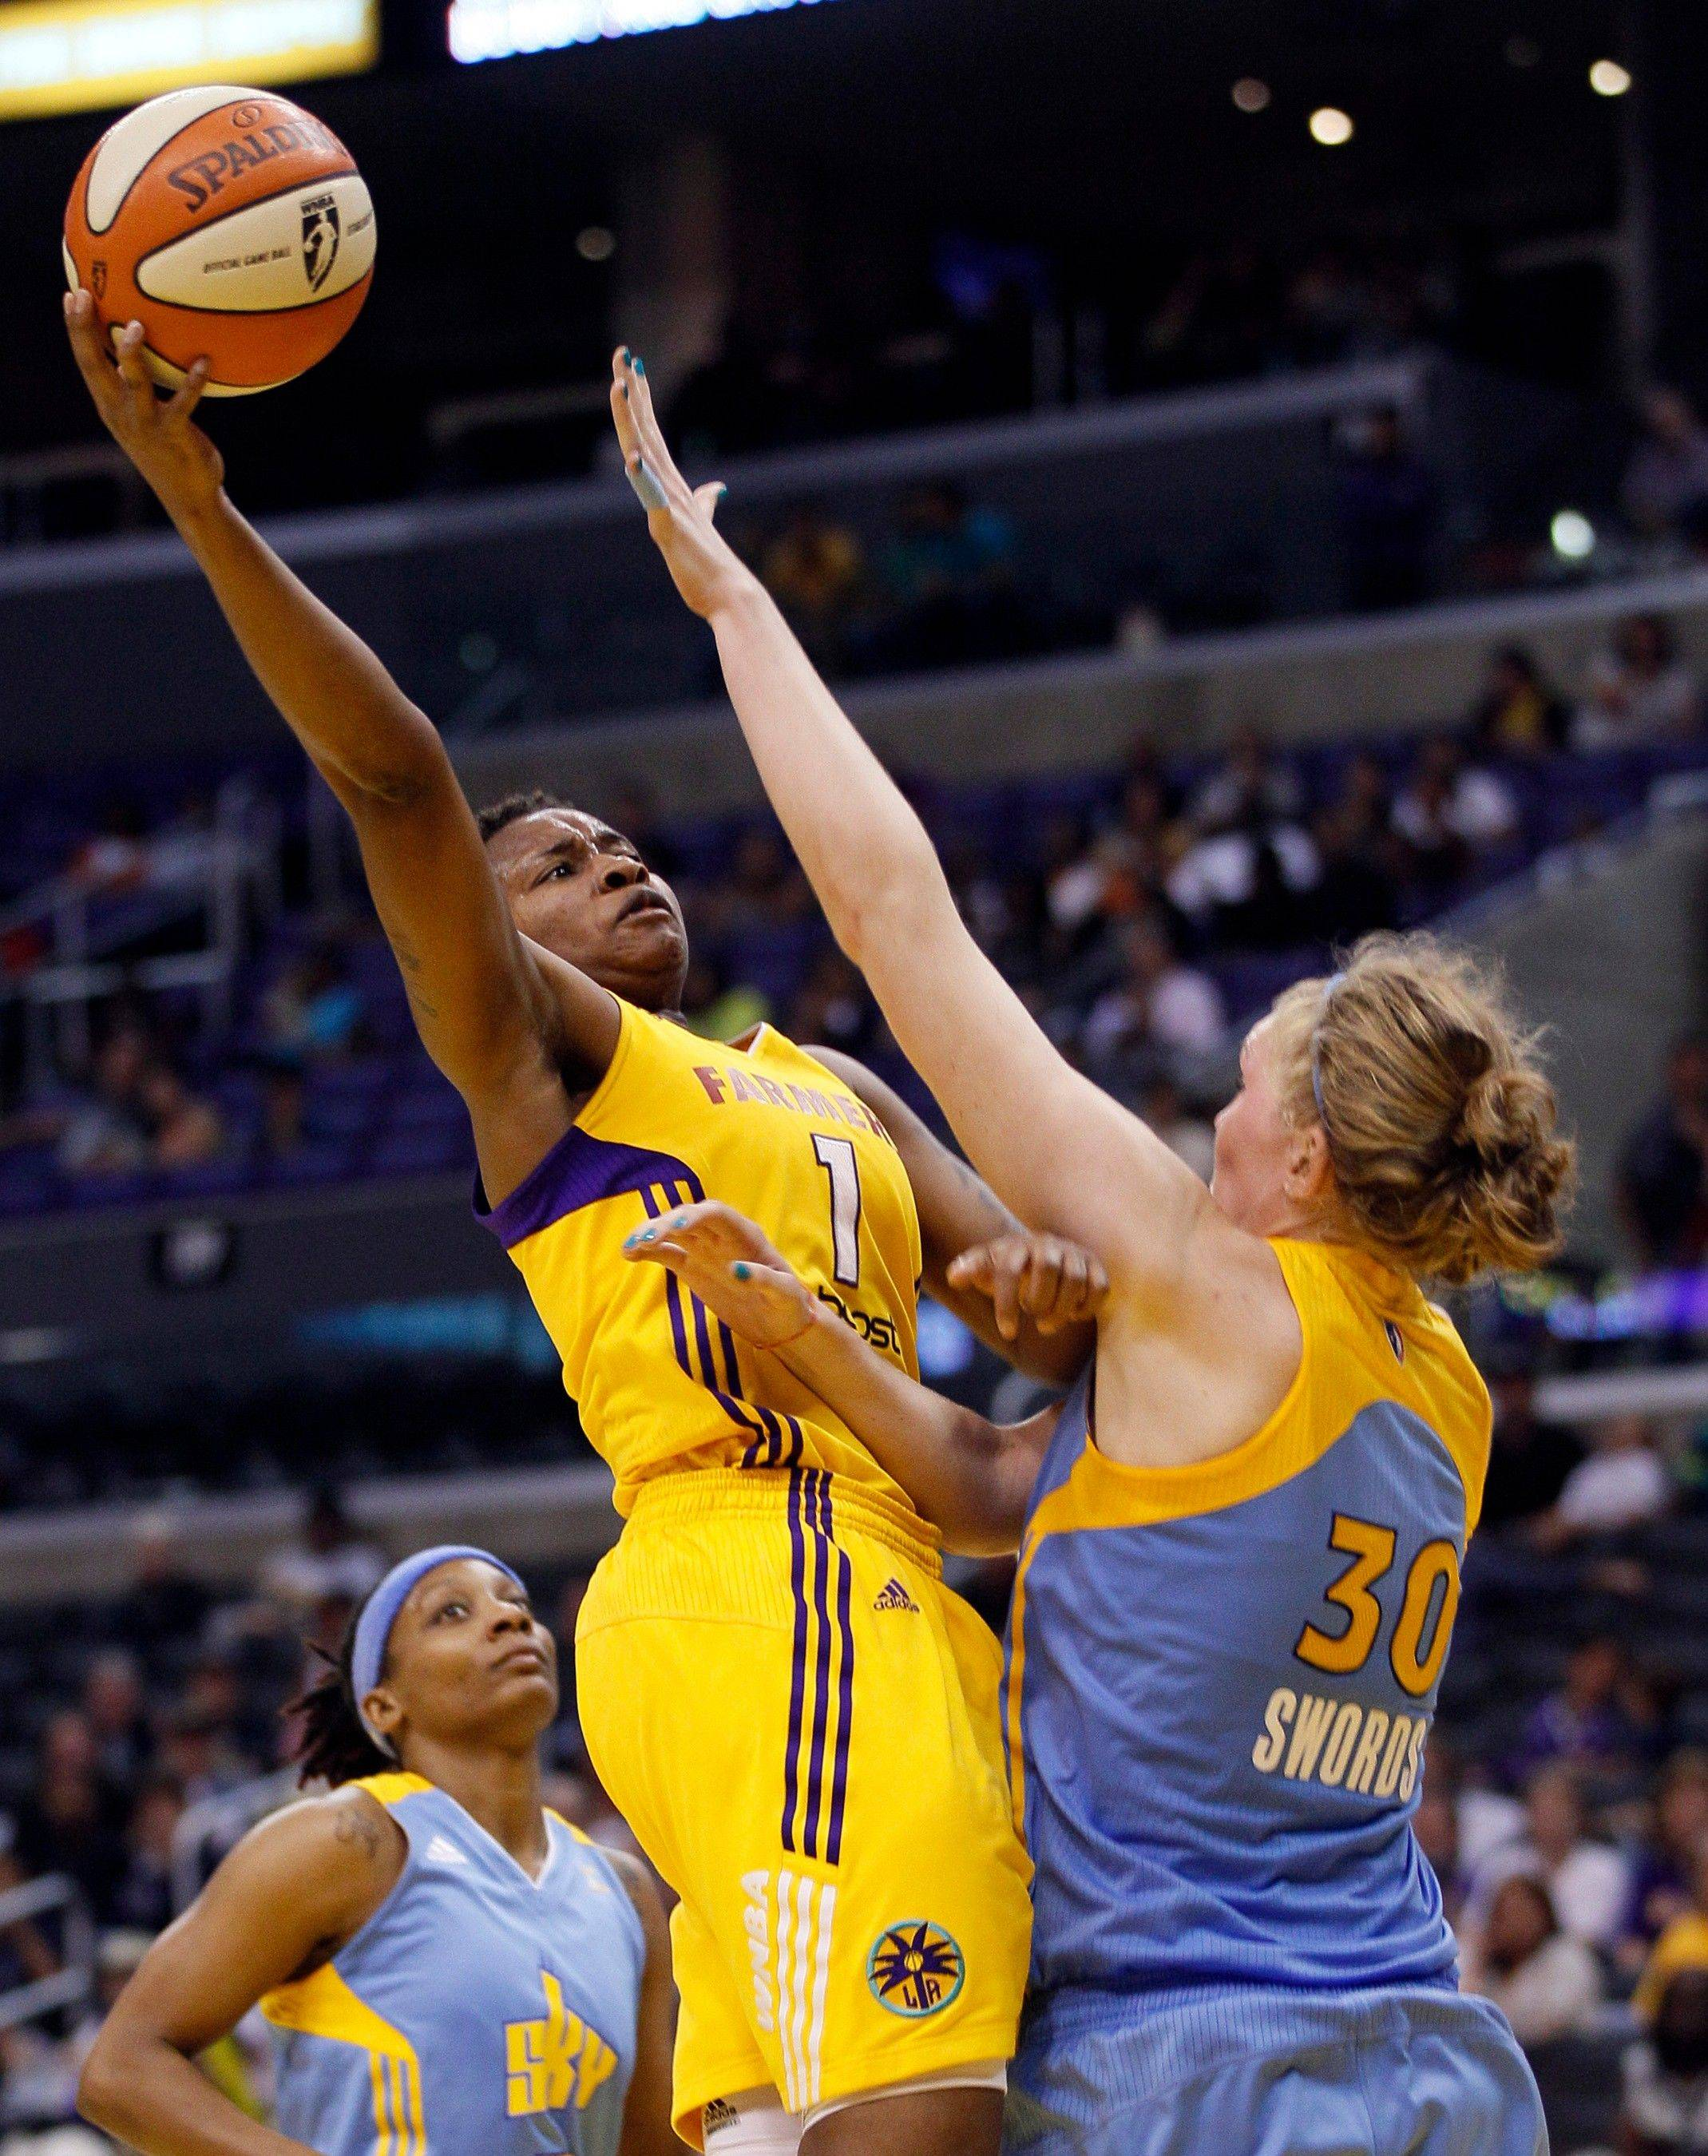 Los Angeles Sparks guard Natasha Lacy (1) goes up for a basket over Chicago Sky center Carolyn Swords (30) during the second half Saturday night. The Sparks won 74-67.